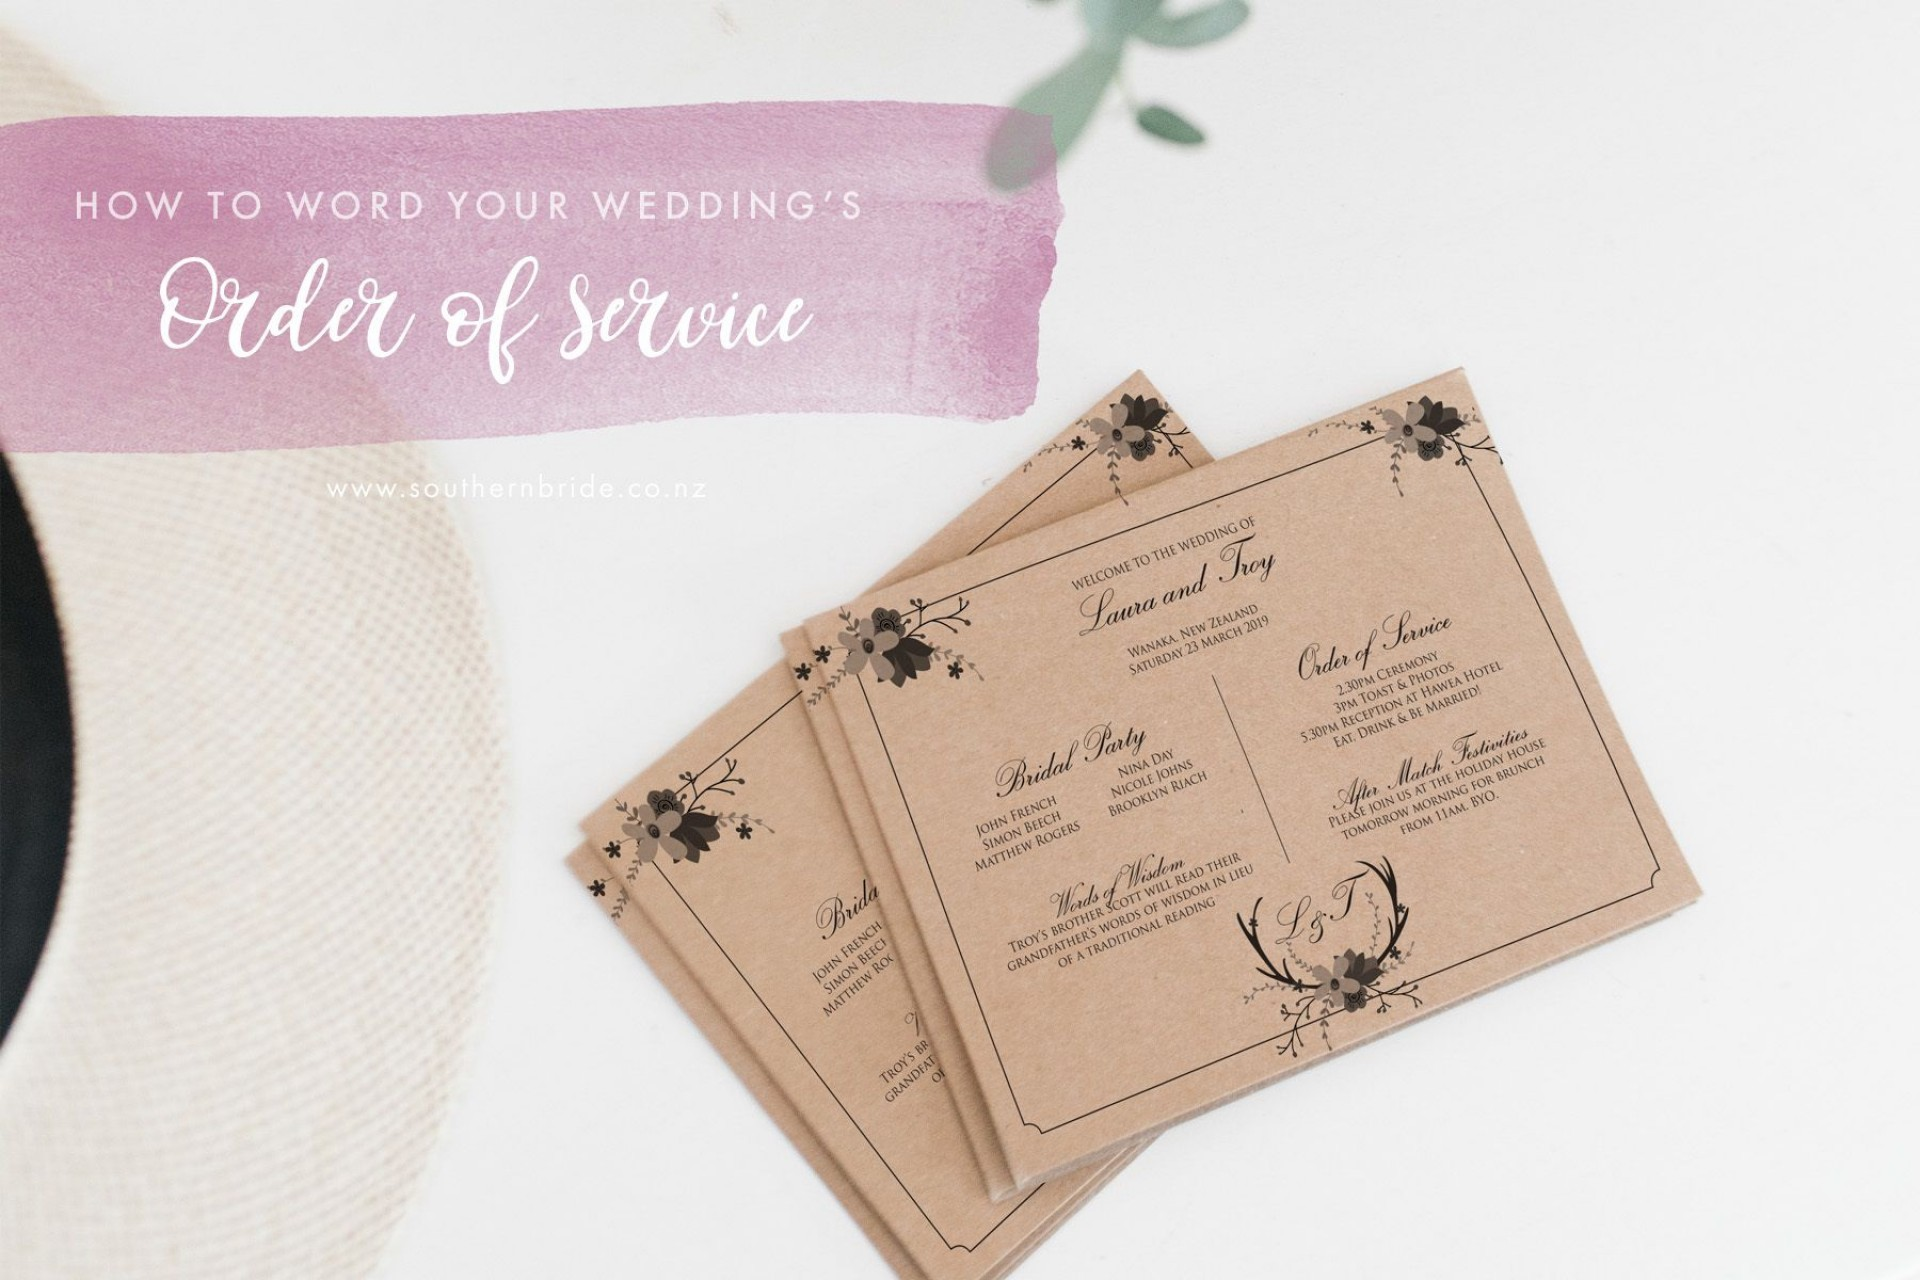 006 Simple Church Wedding Order Of Service Template Uk Photo 1920